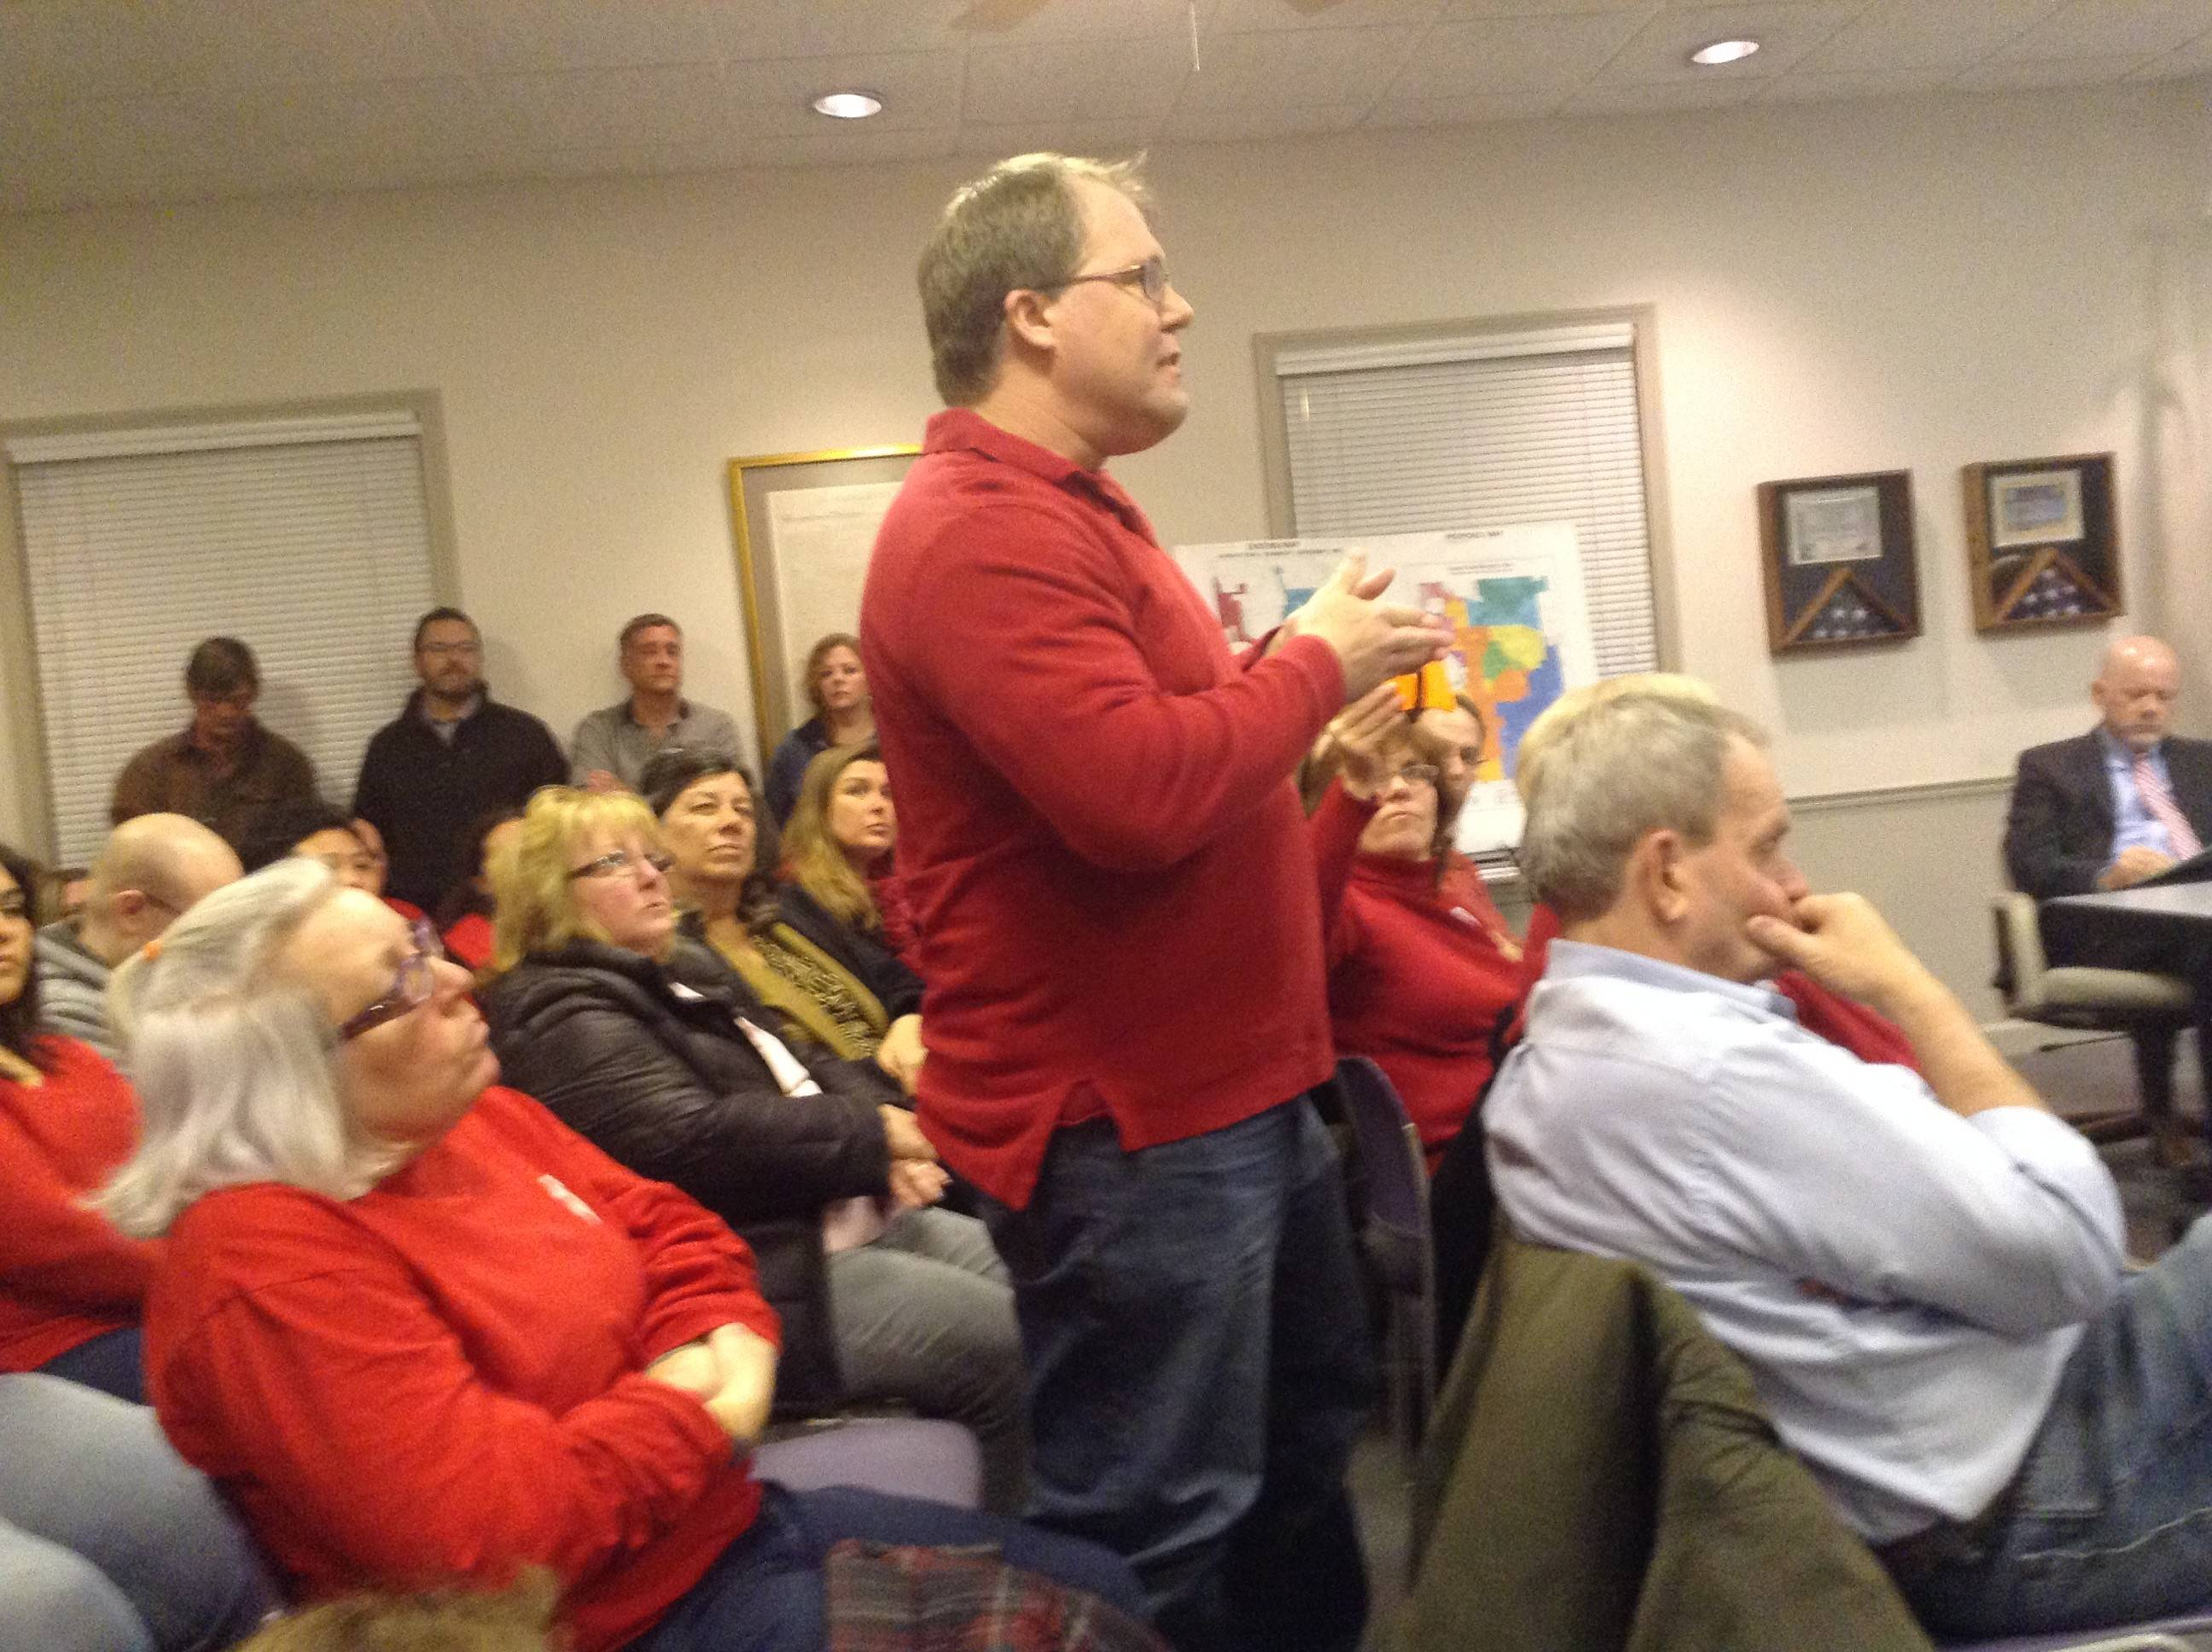 Wauconda resident Dirk Leahy talks to the village board in February. New rules for public comment have been proposed.